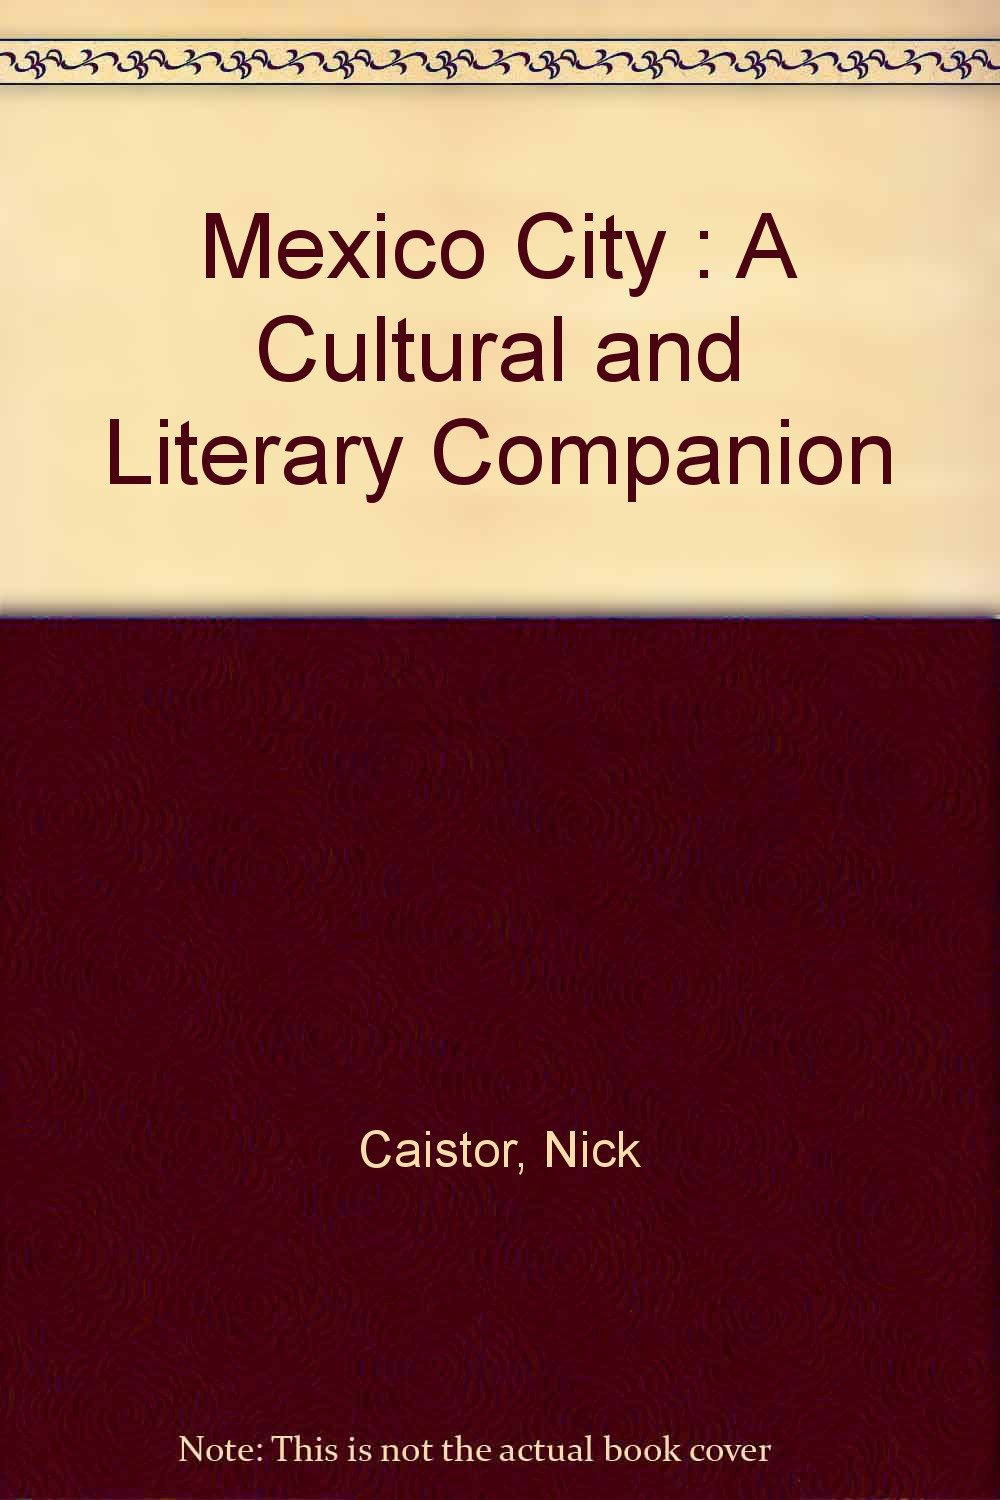 Mexico City: A Cultural and Literary Companion (Cities of the Imagination) PDF